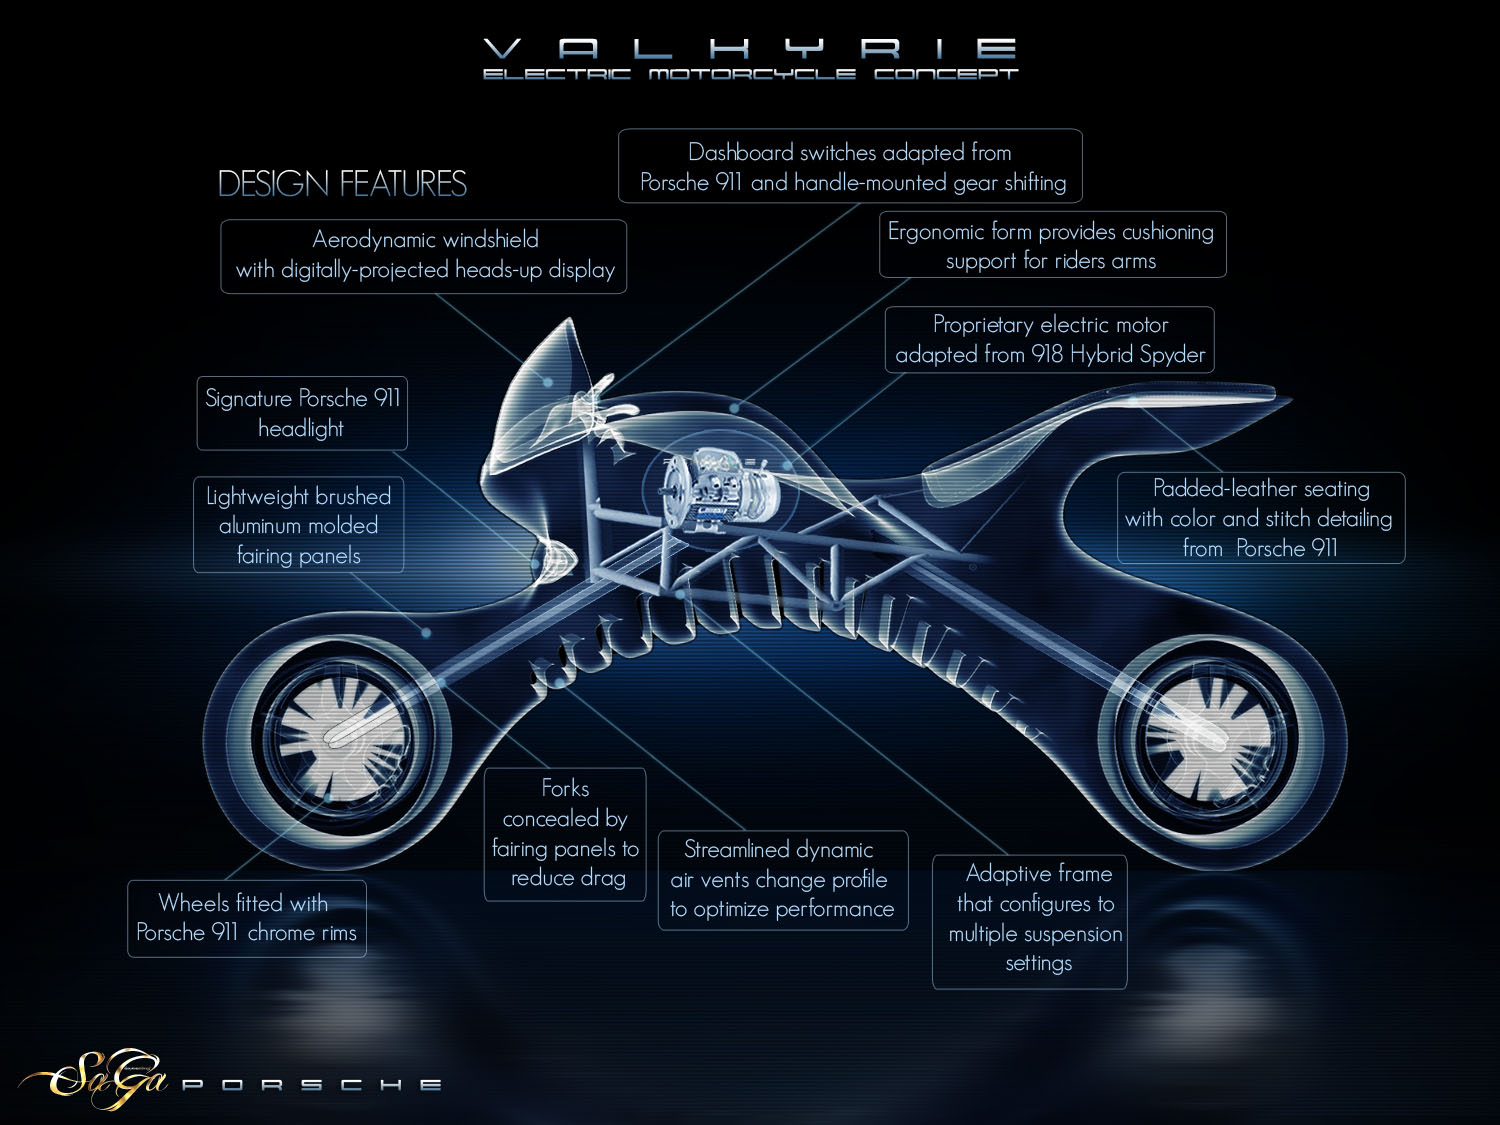 Futuristic Valkyrie Electric Motorcycle Concept Was Inspired by Porsche 911 Sportscar